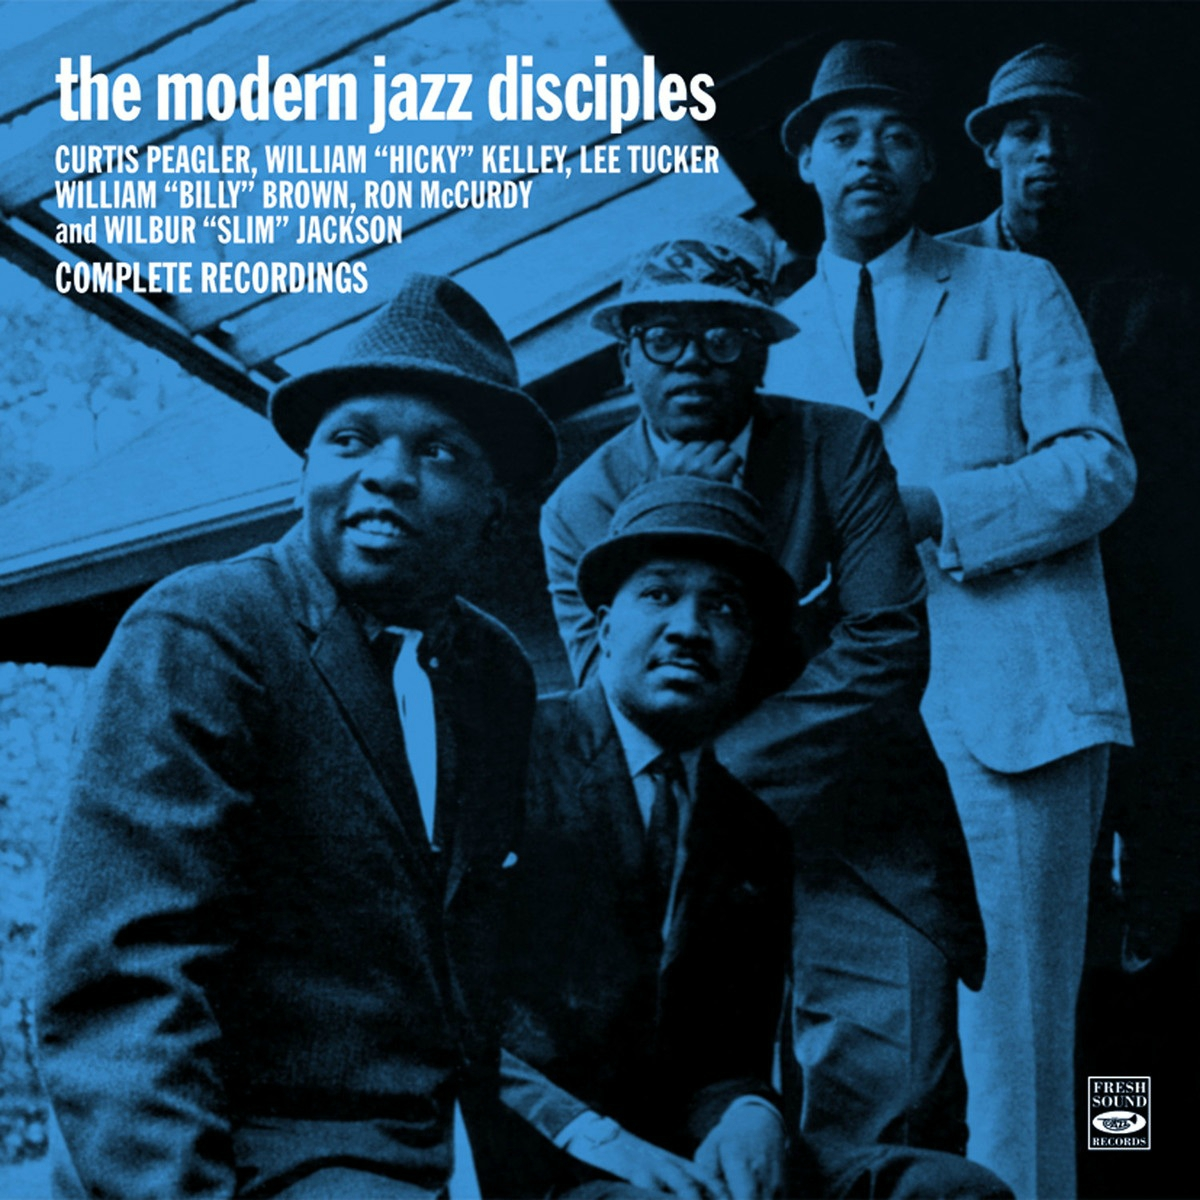 early jazz combo artist 12 young american jazz musicians from the breakout success of artists like gregory porter that take inspiration from early american jazz and count music.